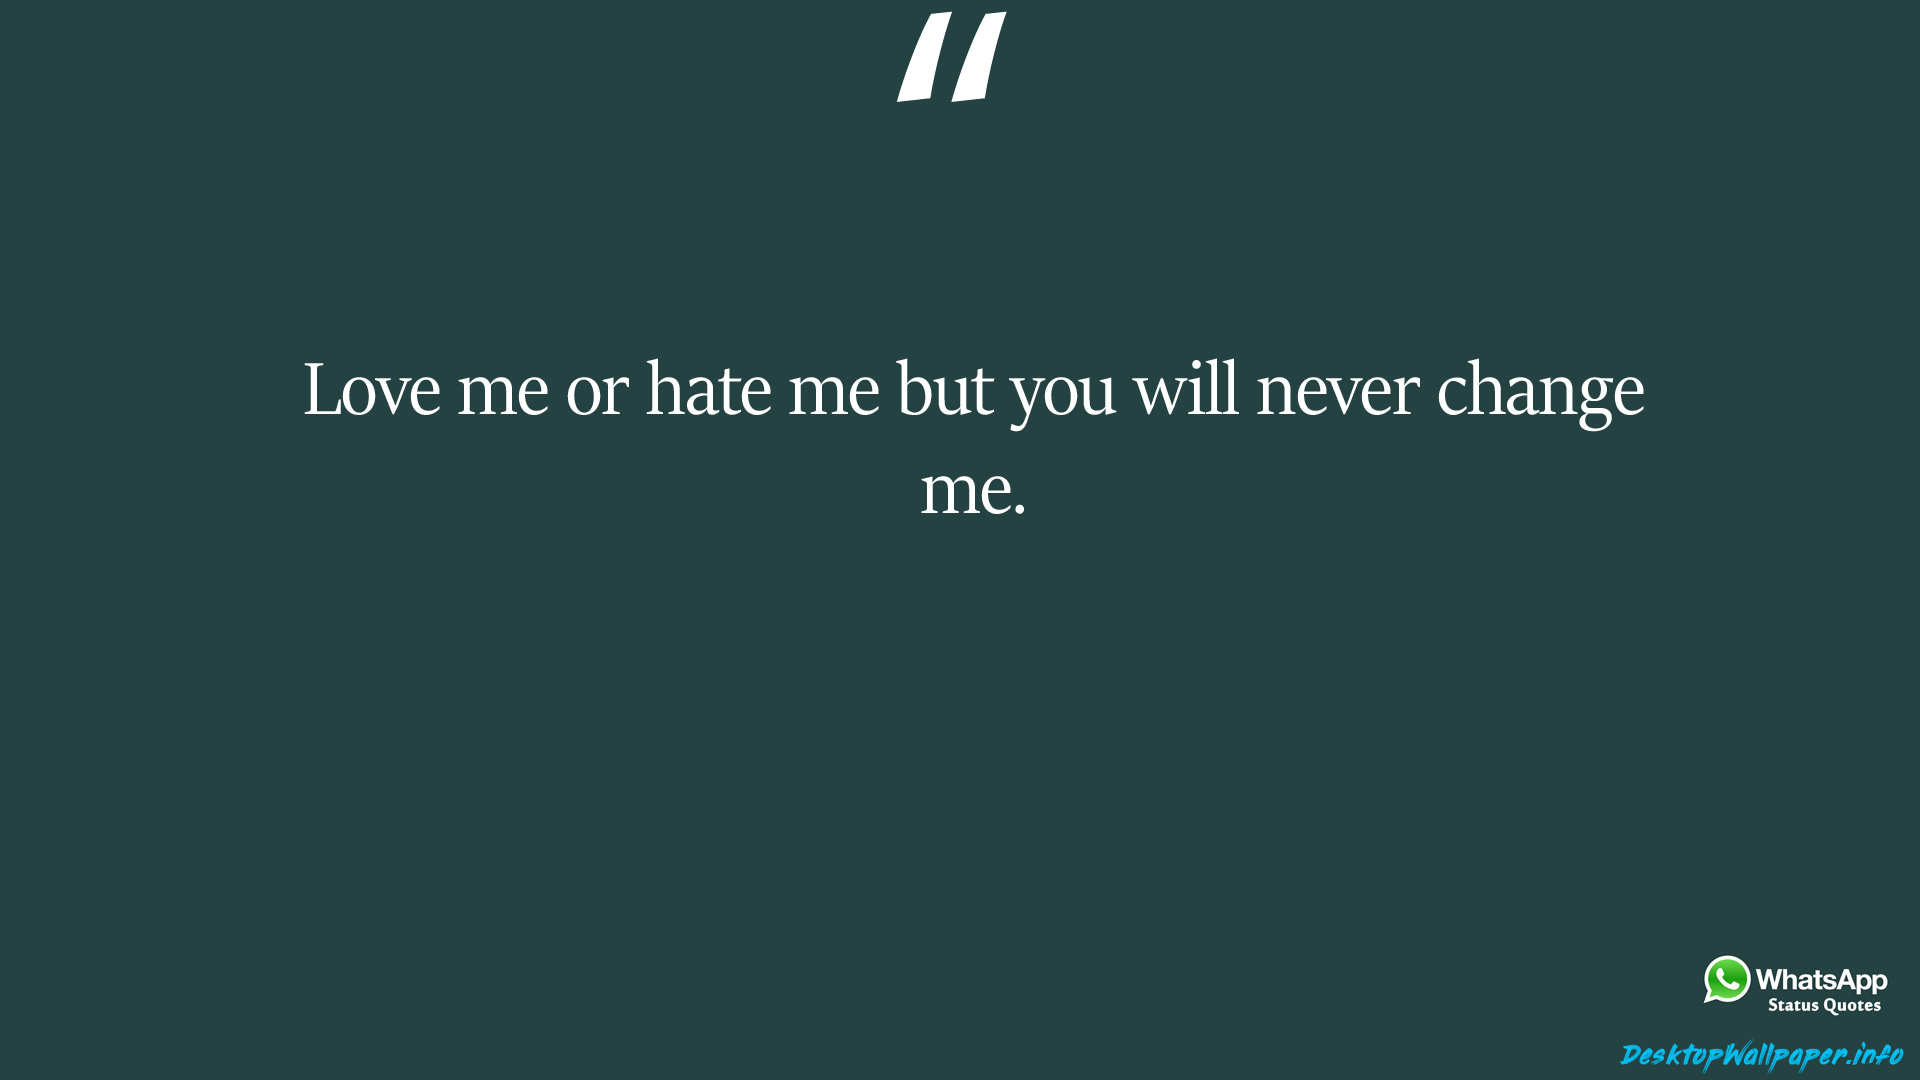 Love me or hate me but you will never change me